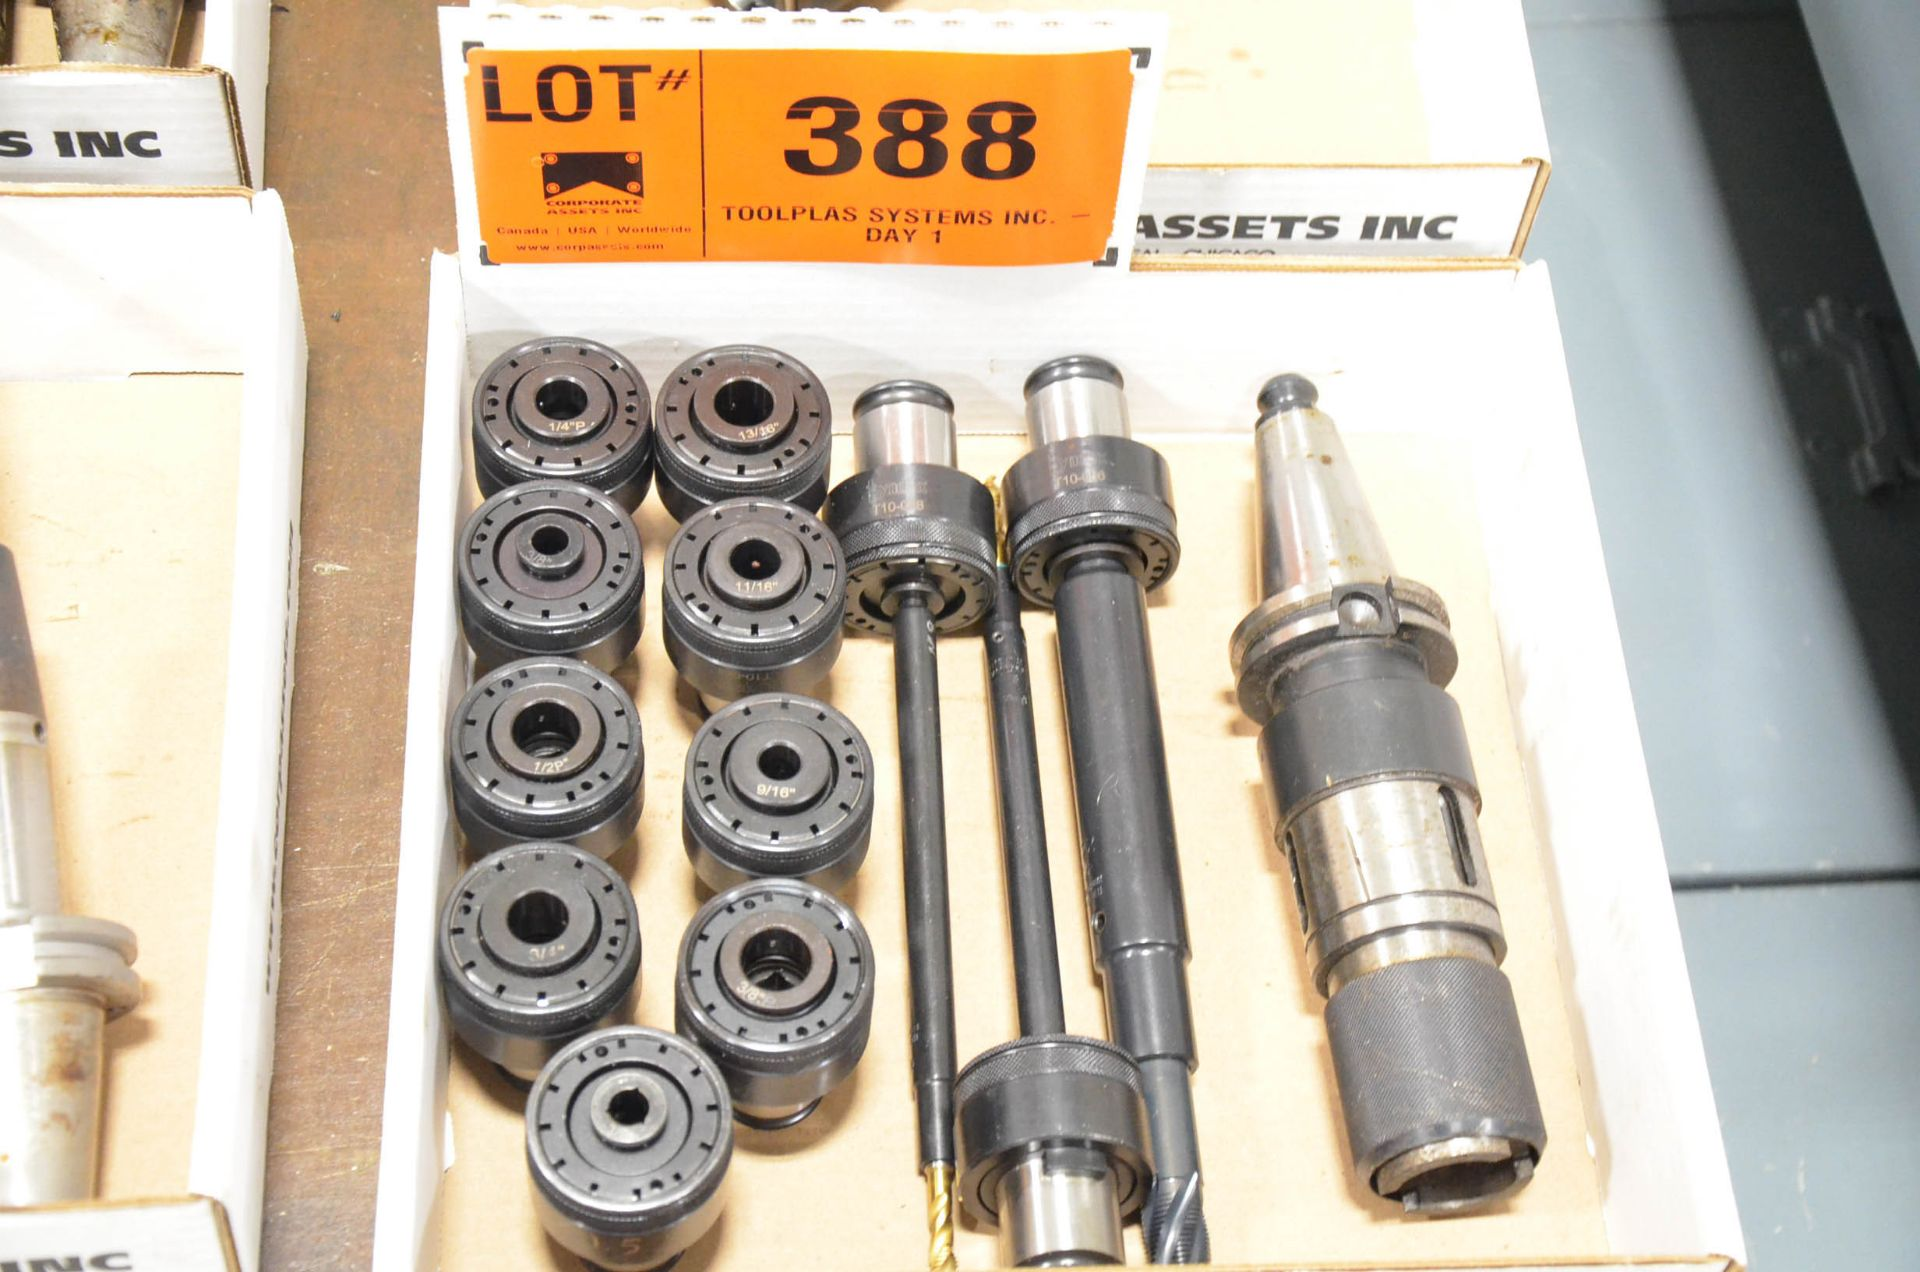 LOT/ CAT 40 QUICK CHANGE HOLDER SET WITH COLLETS